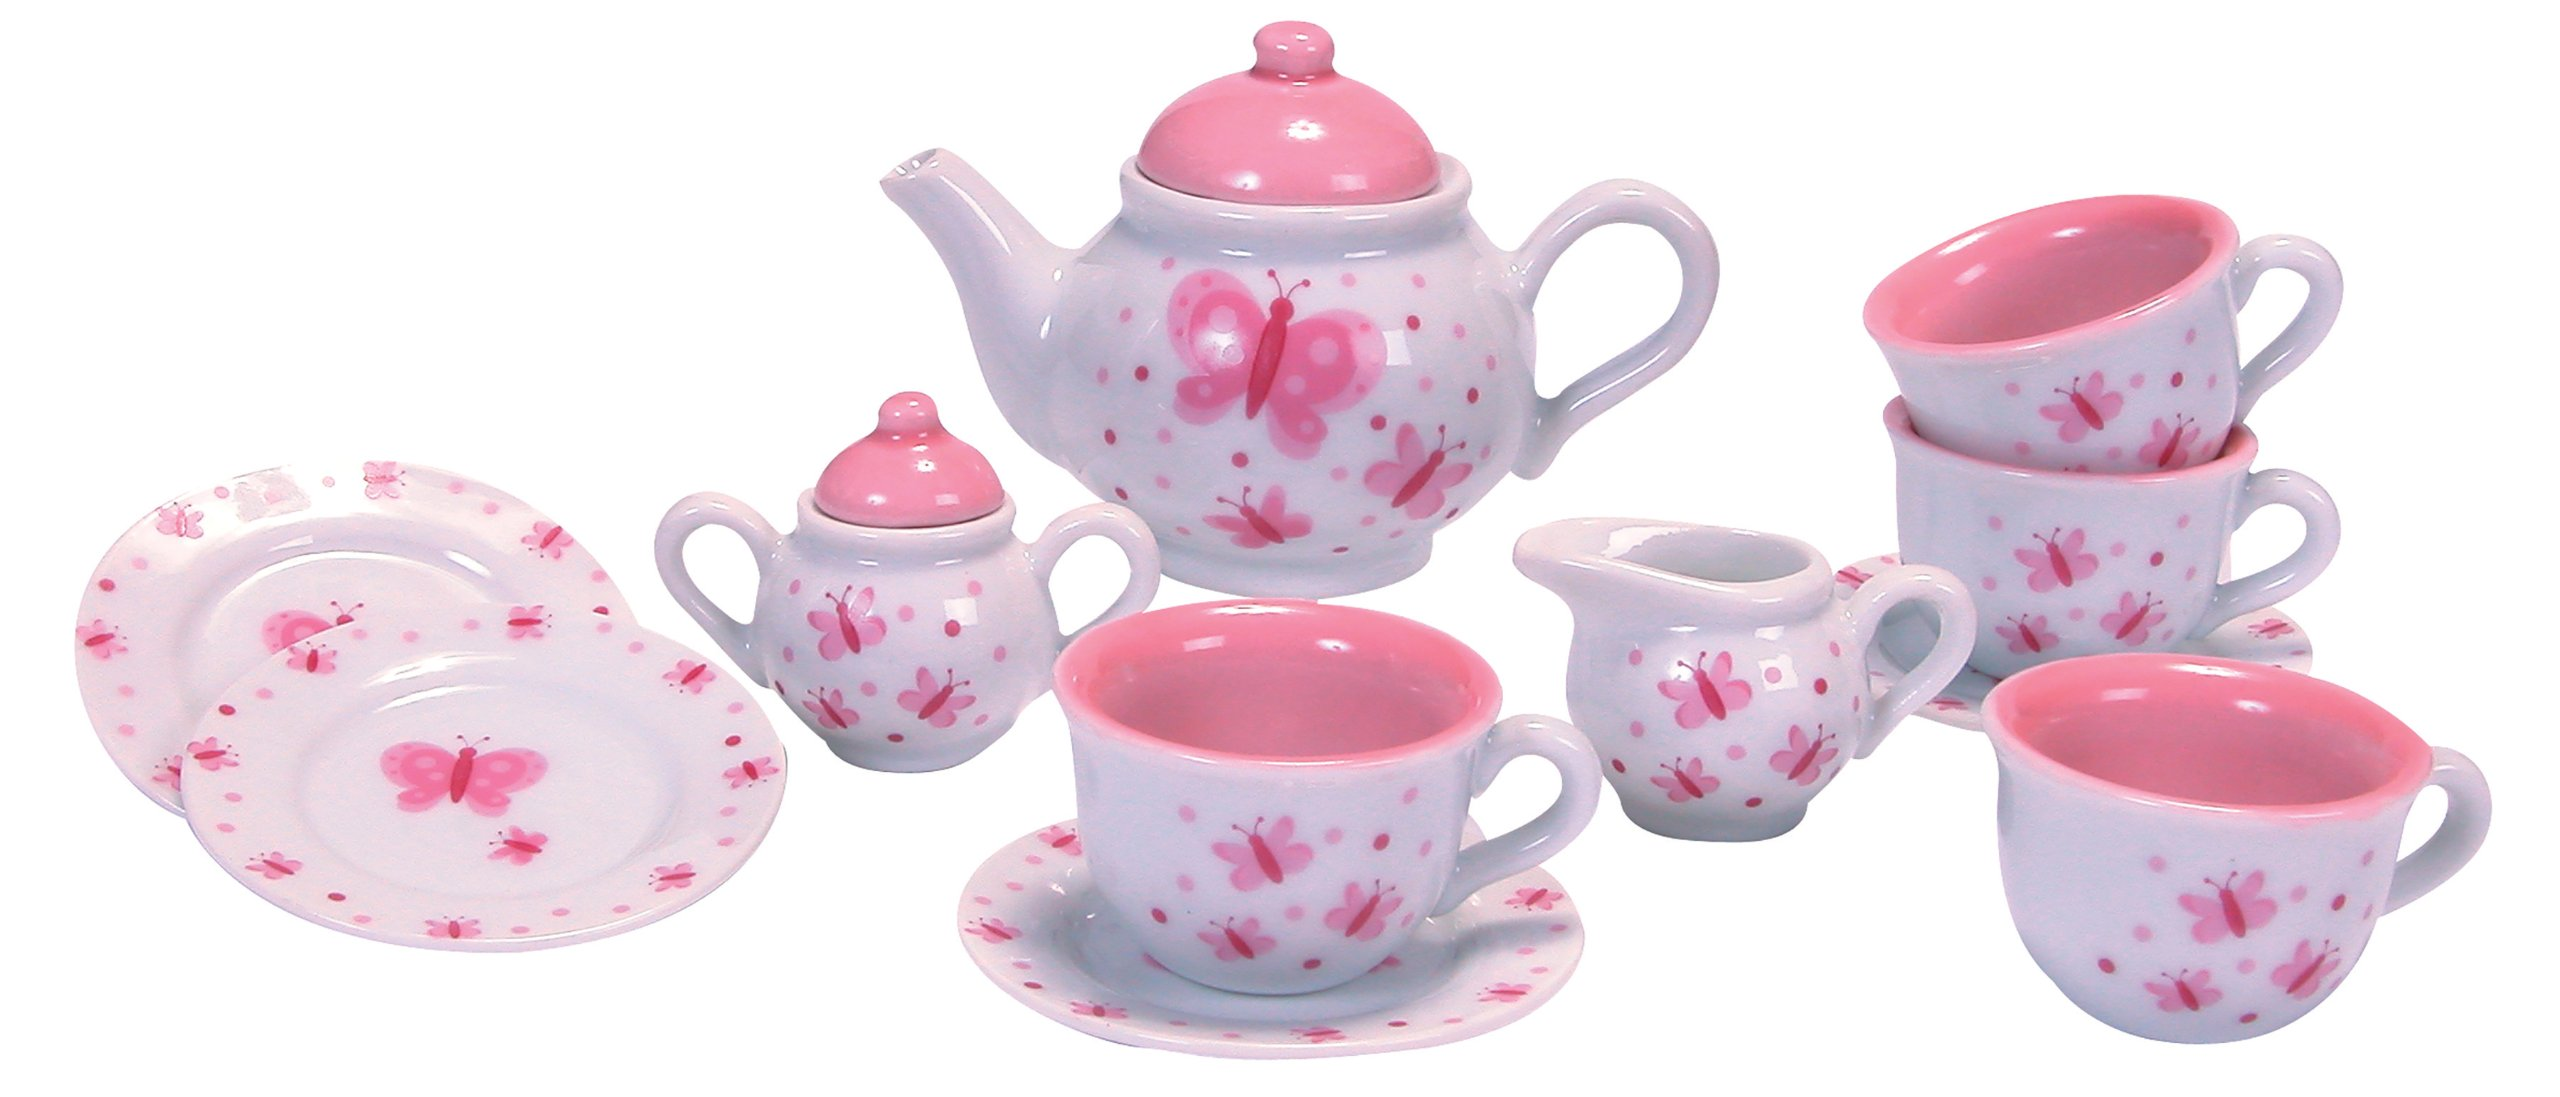 schylling butterfly porcelain tea set kids girls pretend play toy new ebay. Black Bedroom Furniture Sets. Home Design Ideas